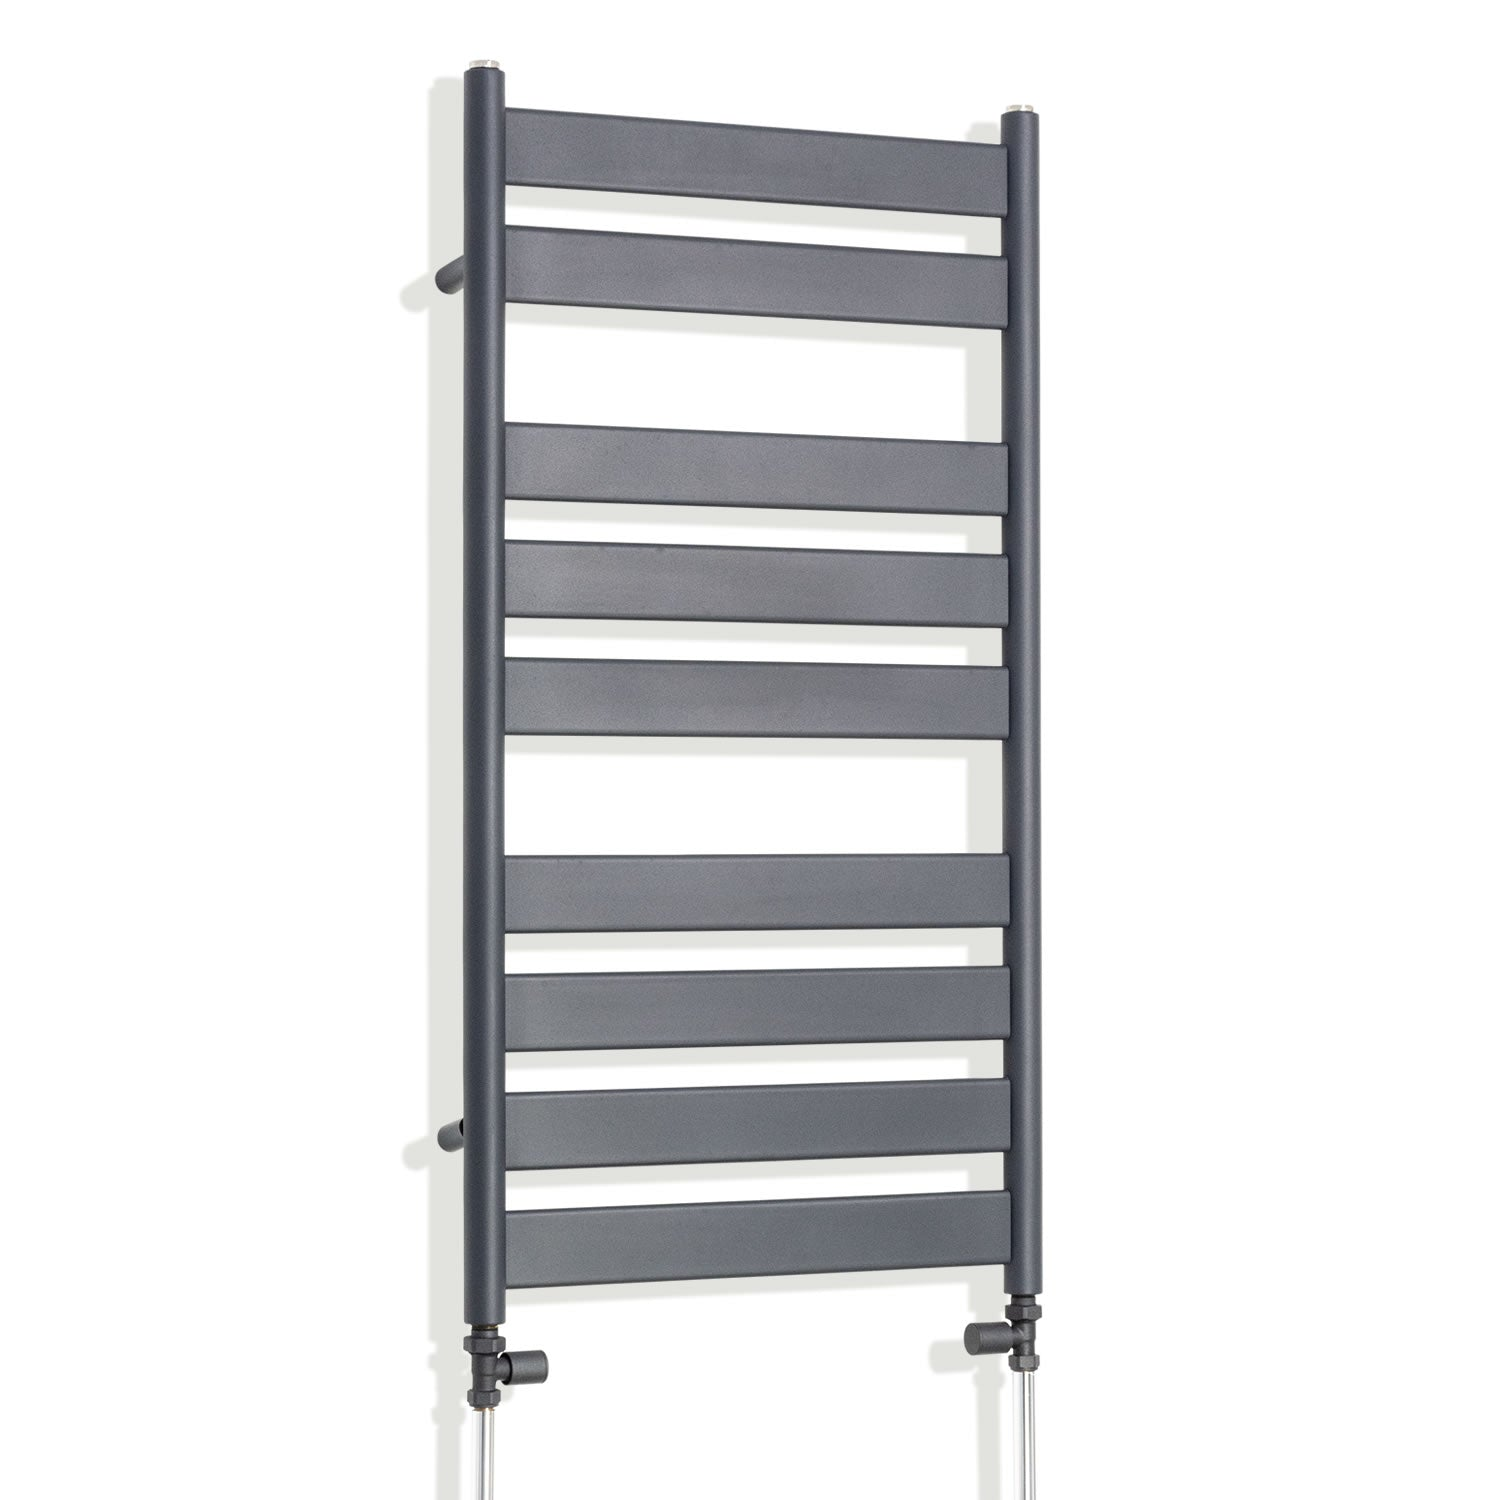 950 x 500 mm Anthracite Heated Flat Panel Towel Rail Radiator Central heating with straight valves